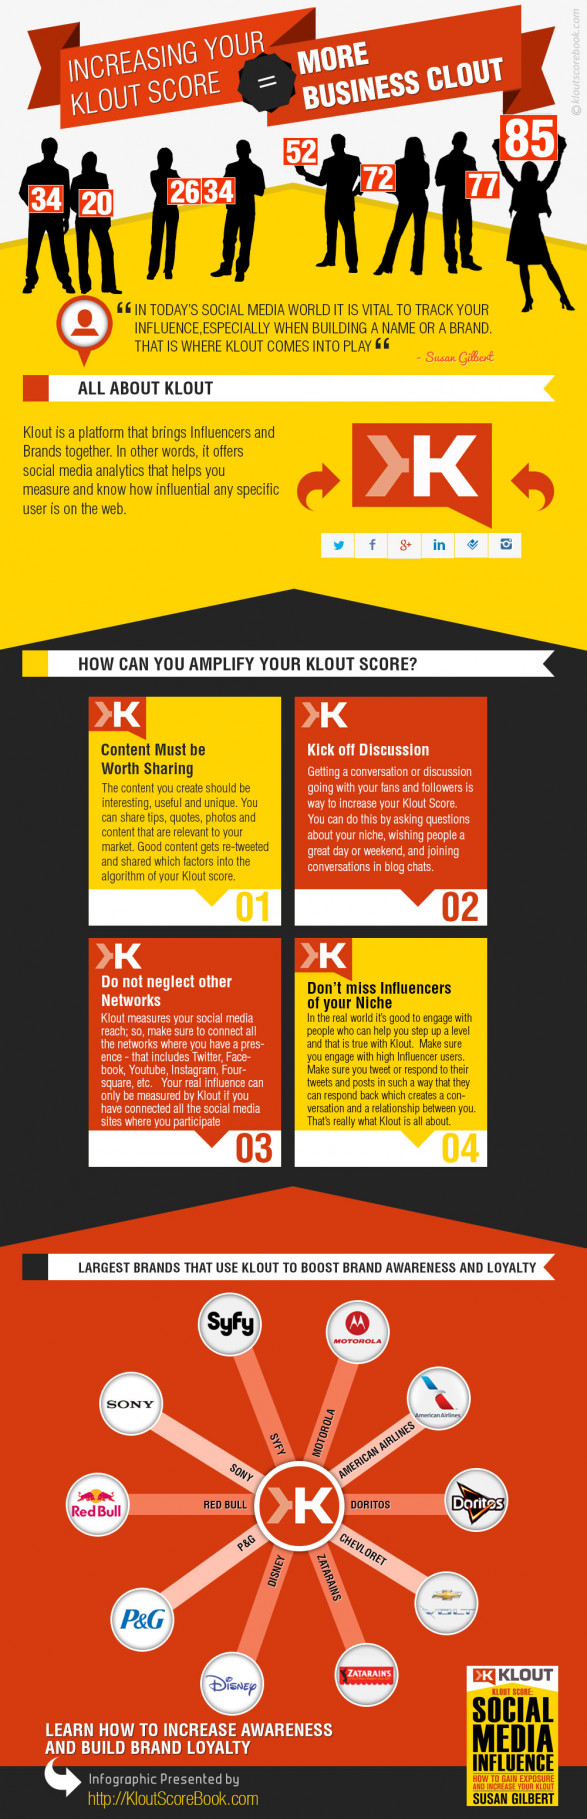 How to amplify your Klout Score